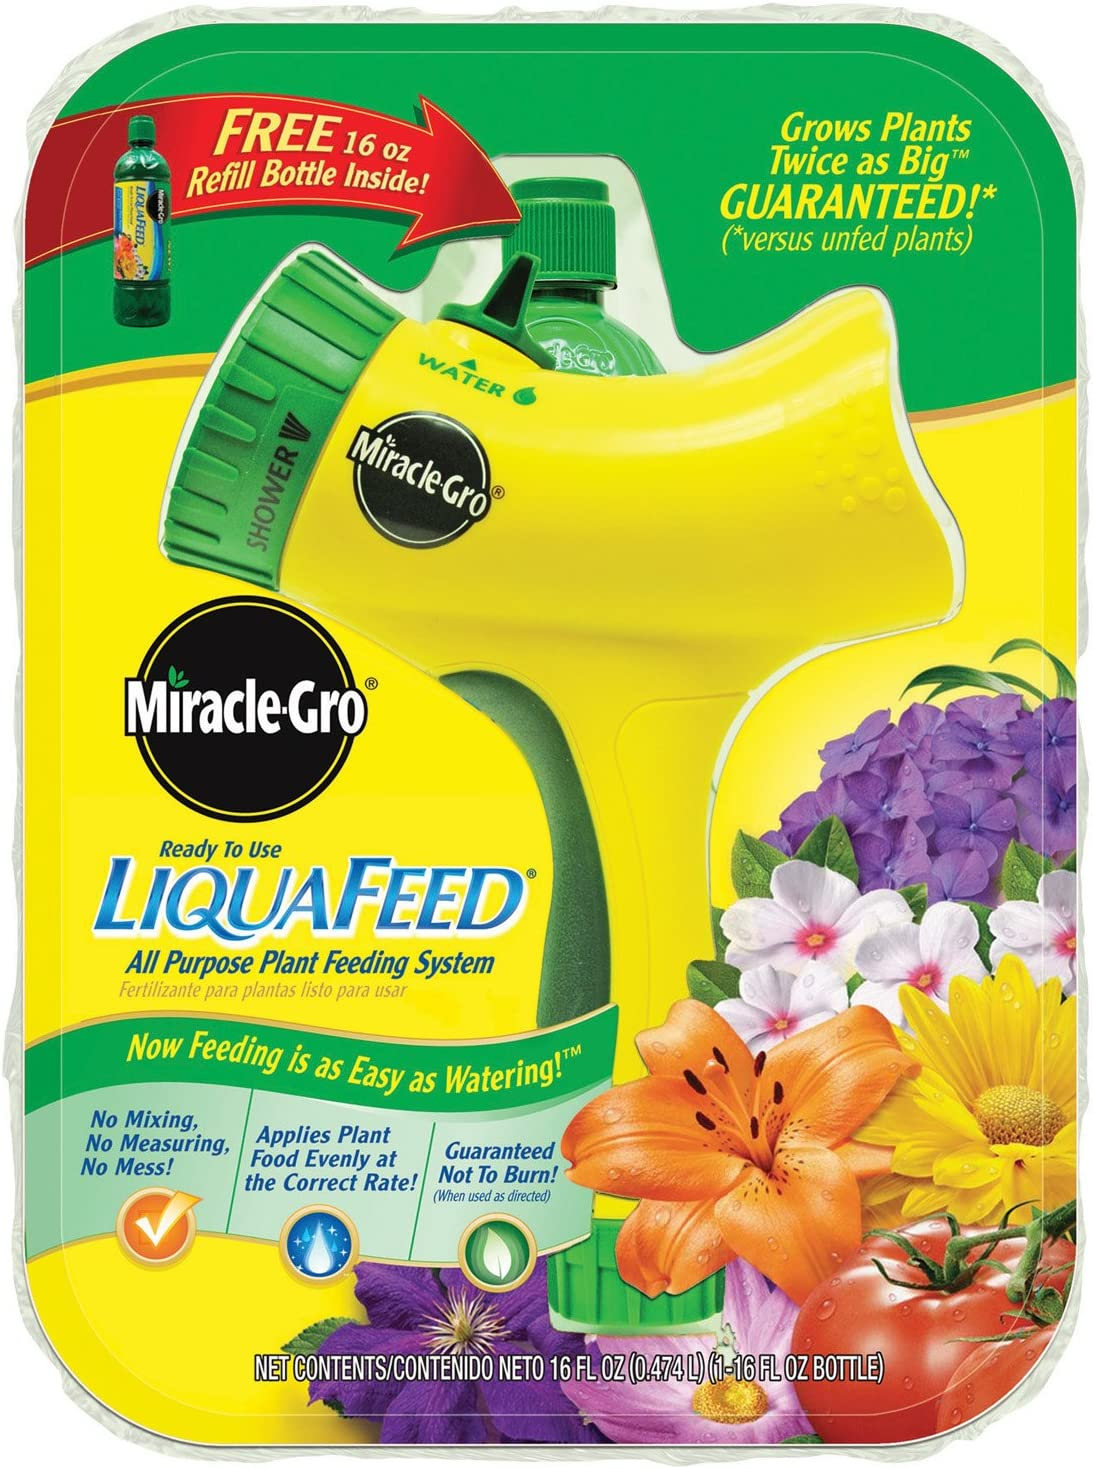 Miracle-Gro 101411 LiquaFeed All Purpose Plant Feeding System